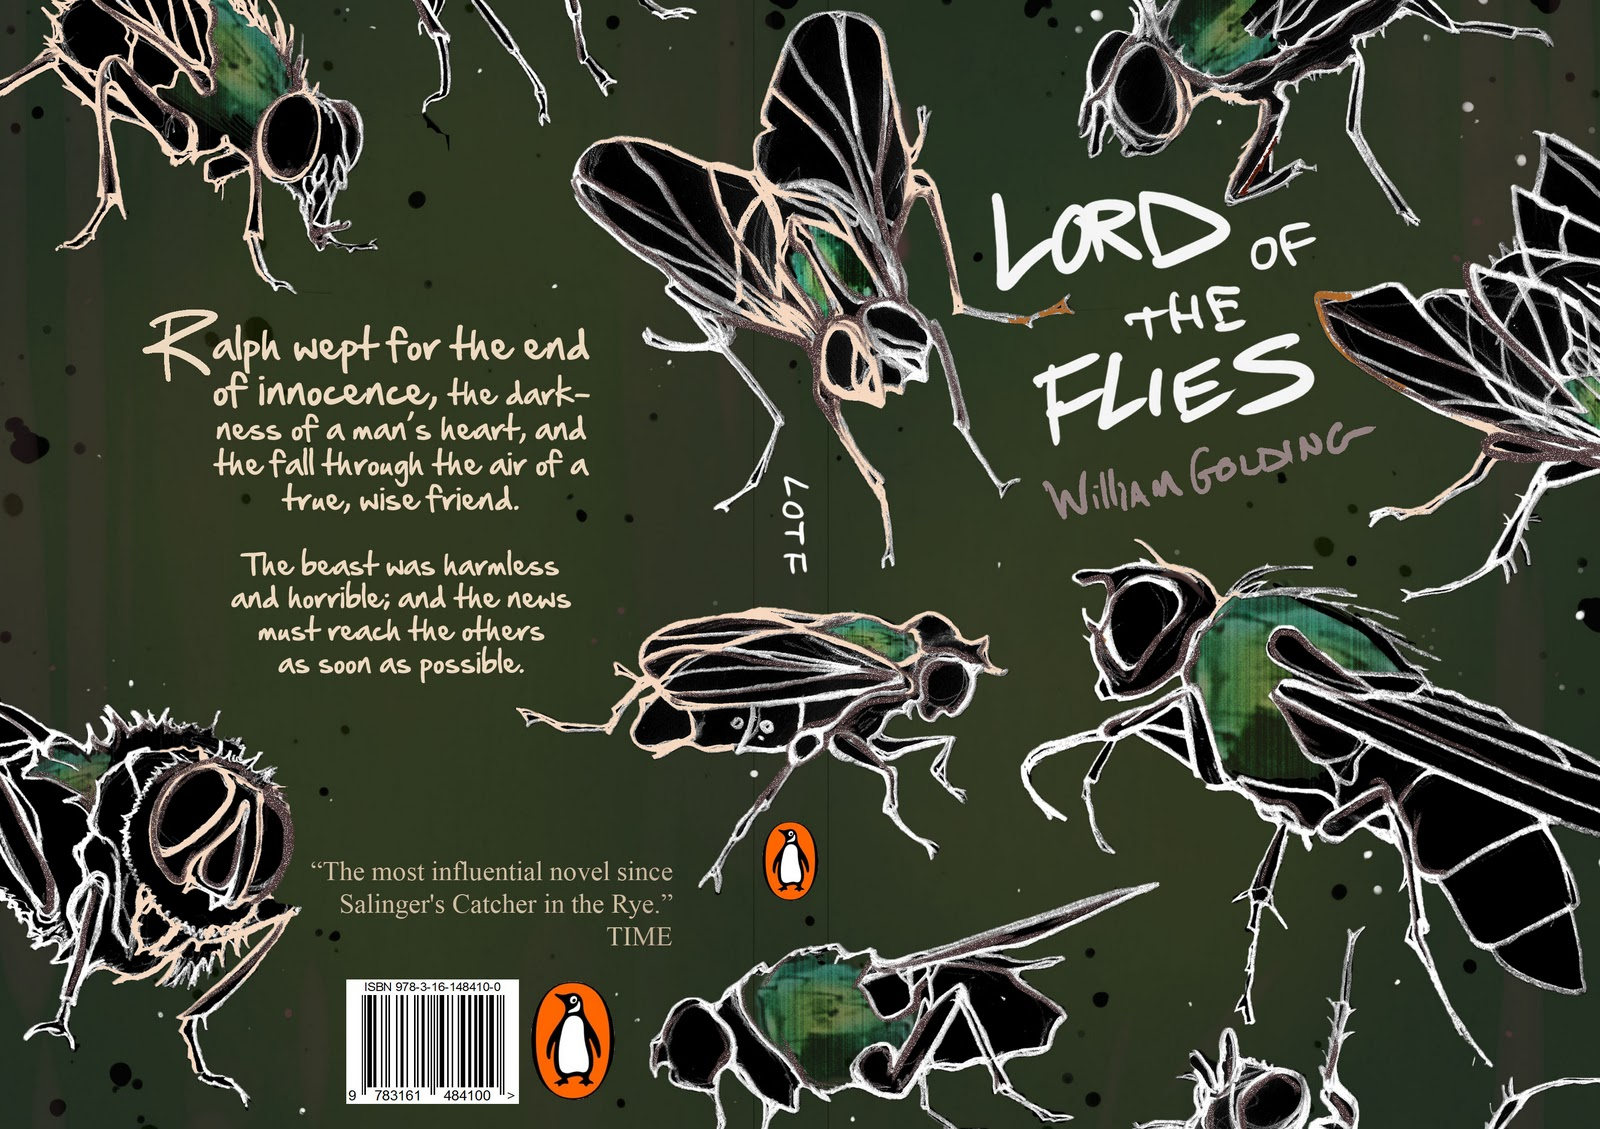 essay on good vs. evil in lord of the flies Lord of the flies, by william golding, is a novel about a group of english children who land on an island due to a plane crash the boys are forced to fend for their survival at the beginning they set civilized standards that seem to work, but eventually the kids end up breaking them soon.